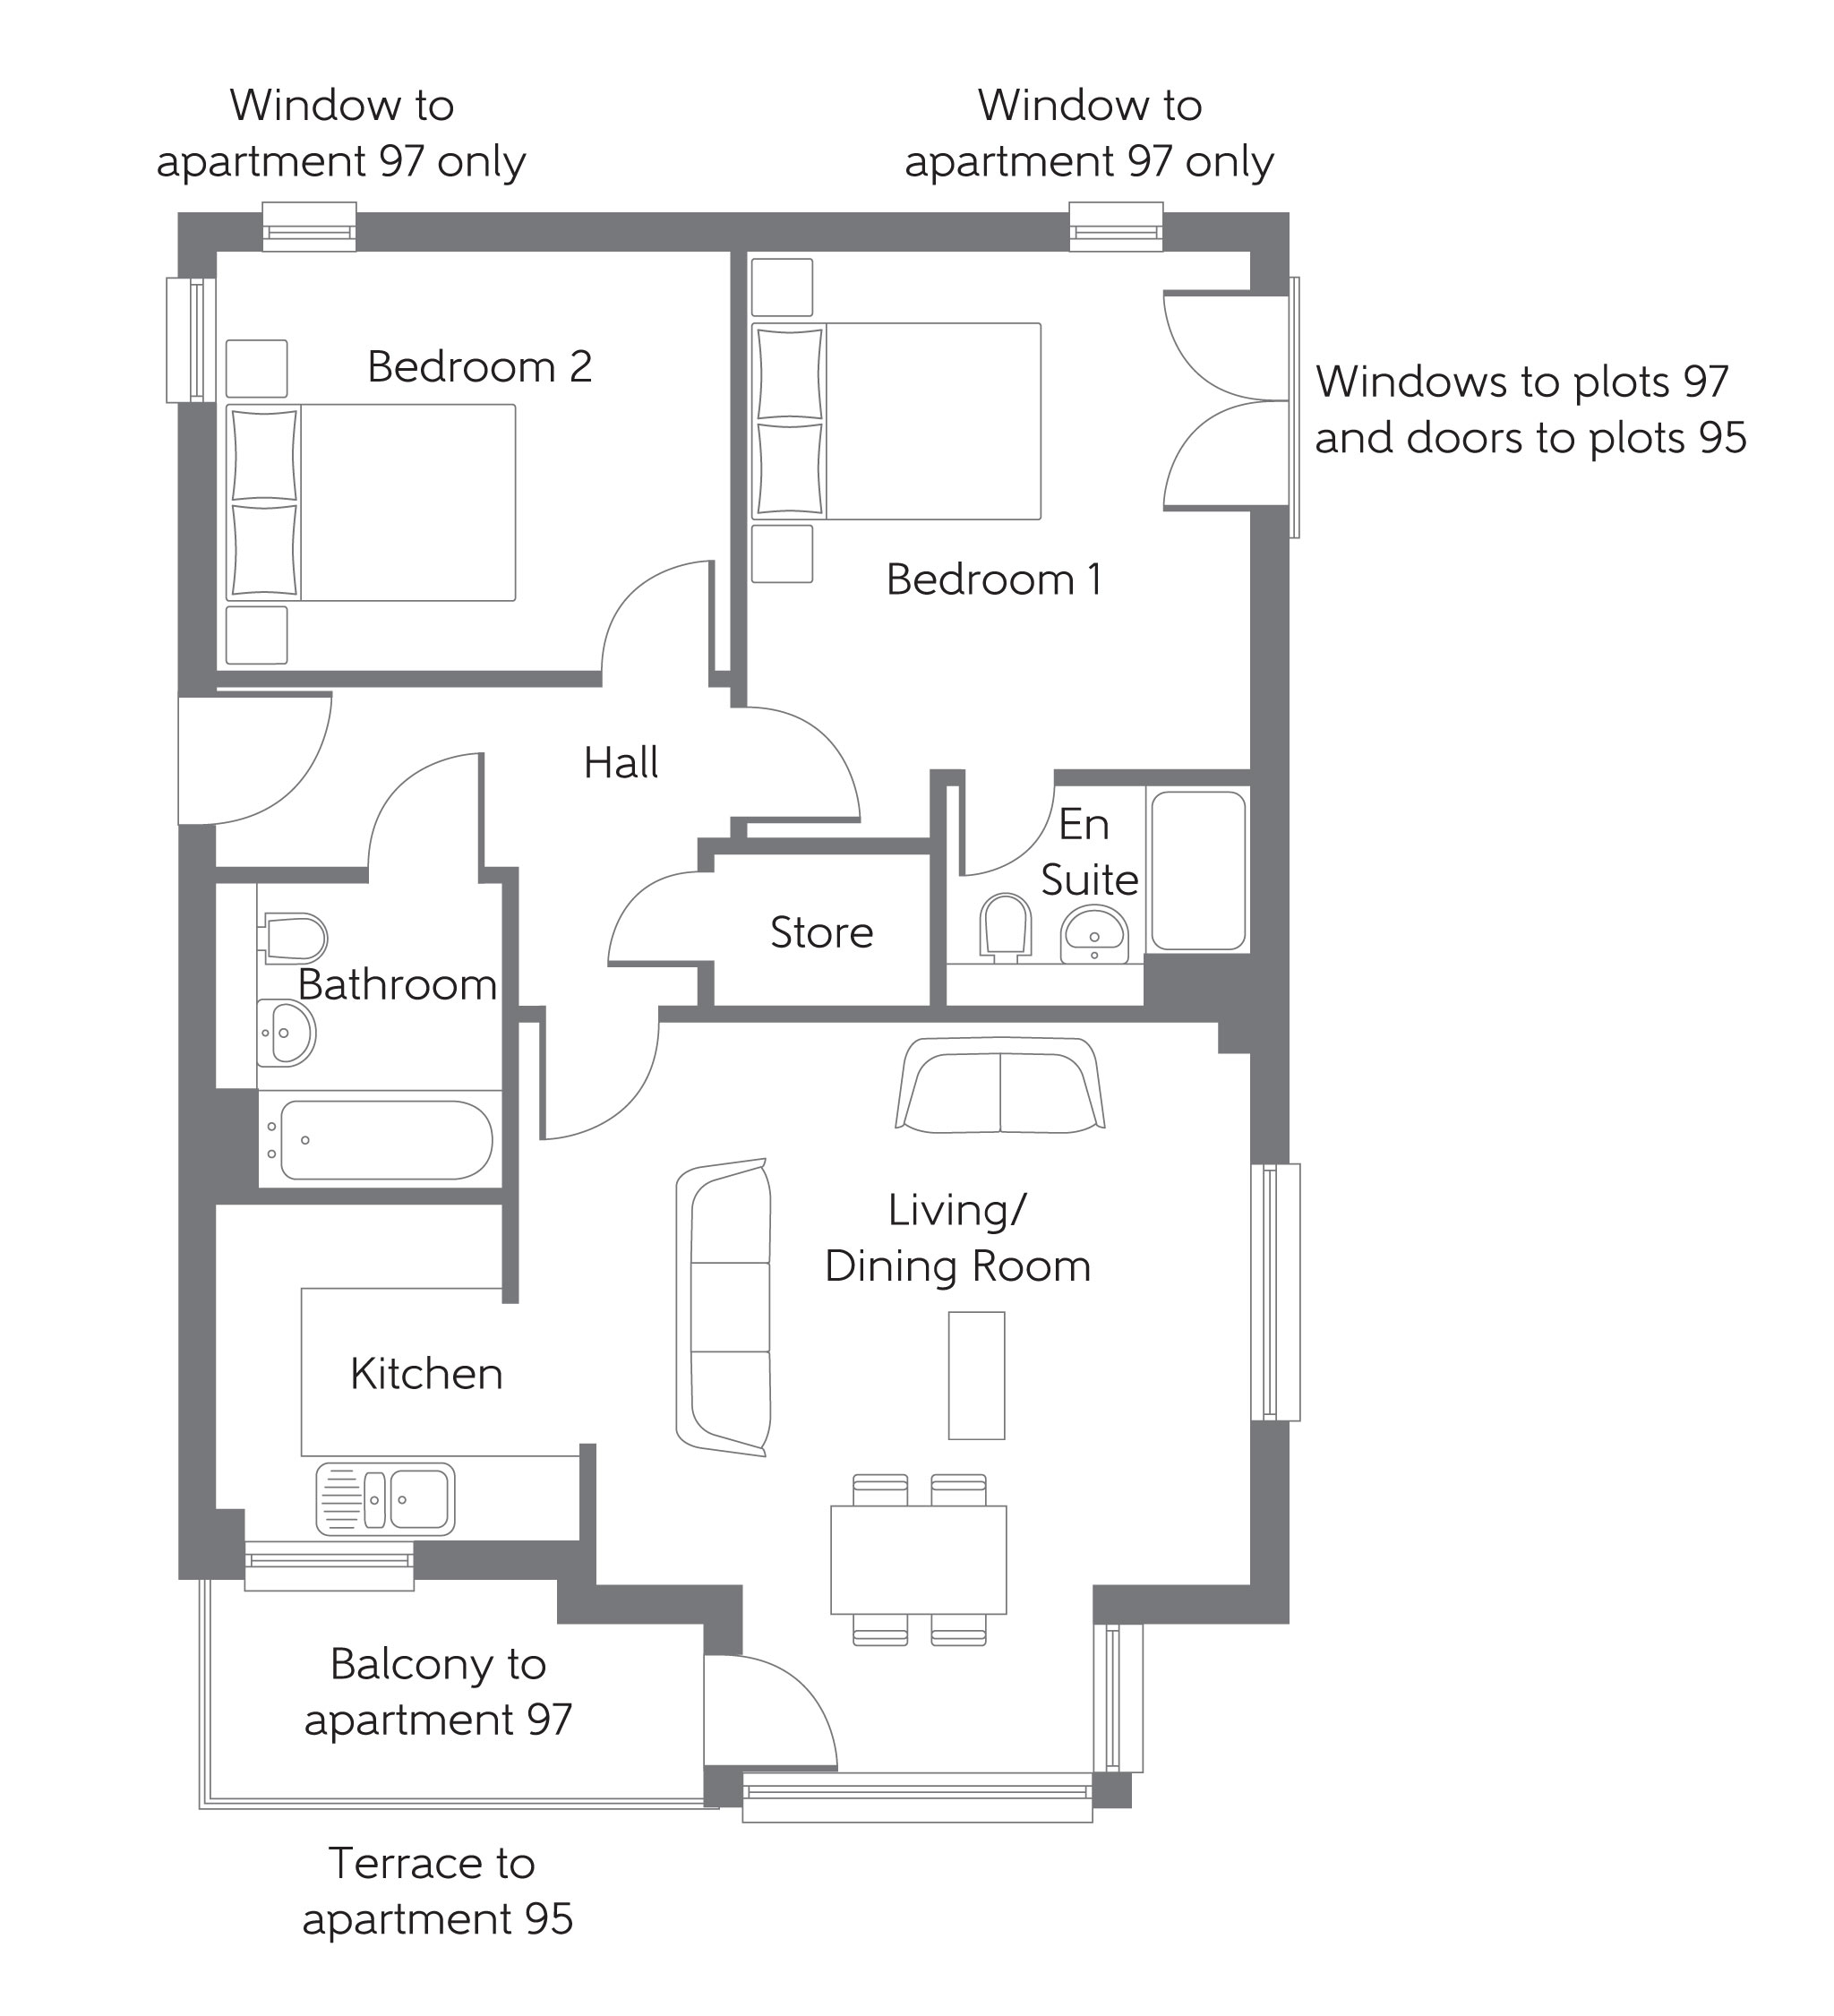 New Kent Apartments: New Apartment In Wouldham, Kent From Bellway Homes